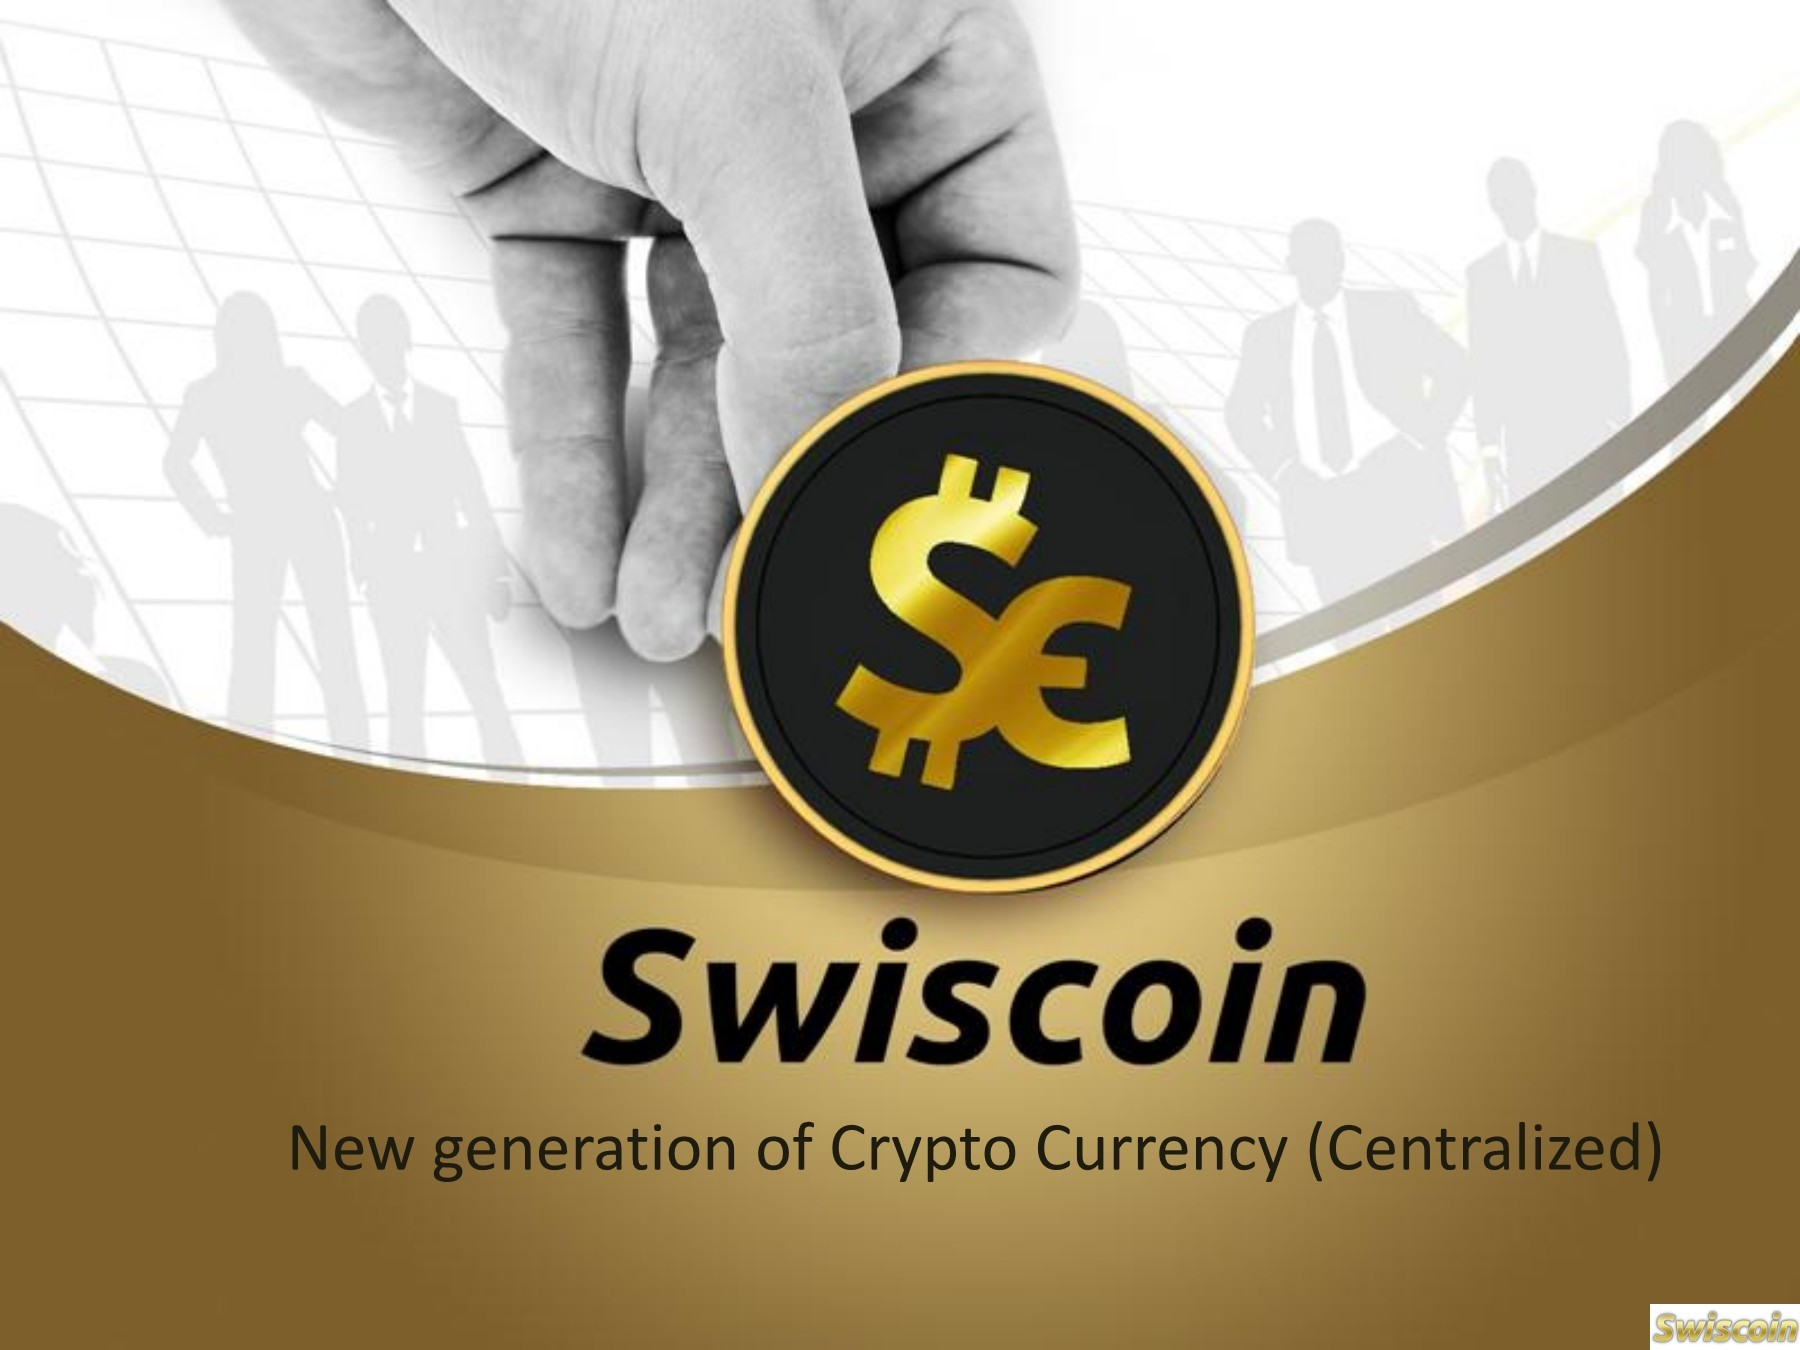 swiscoin cryptocurrency